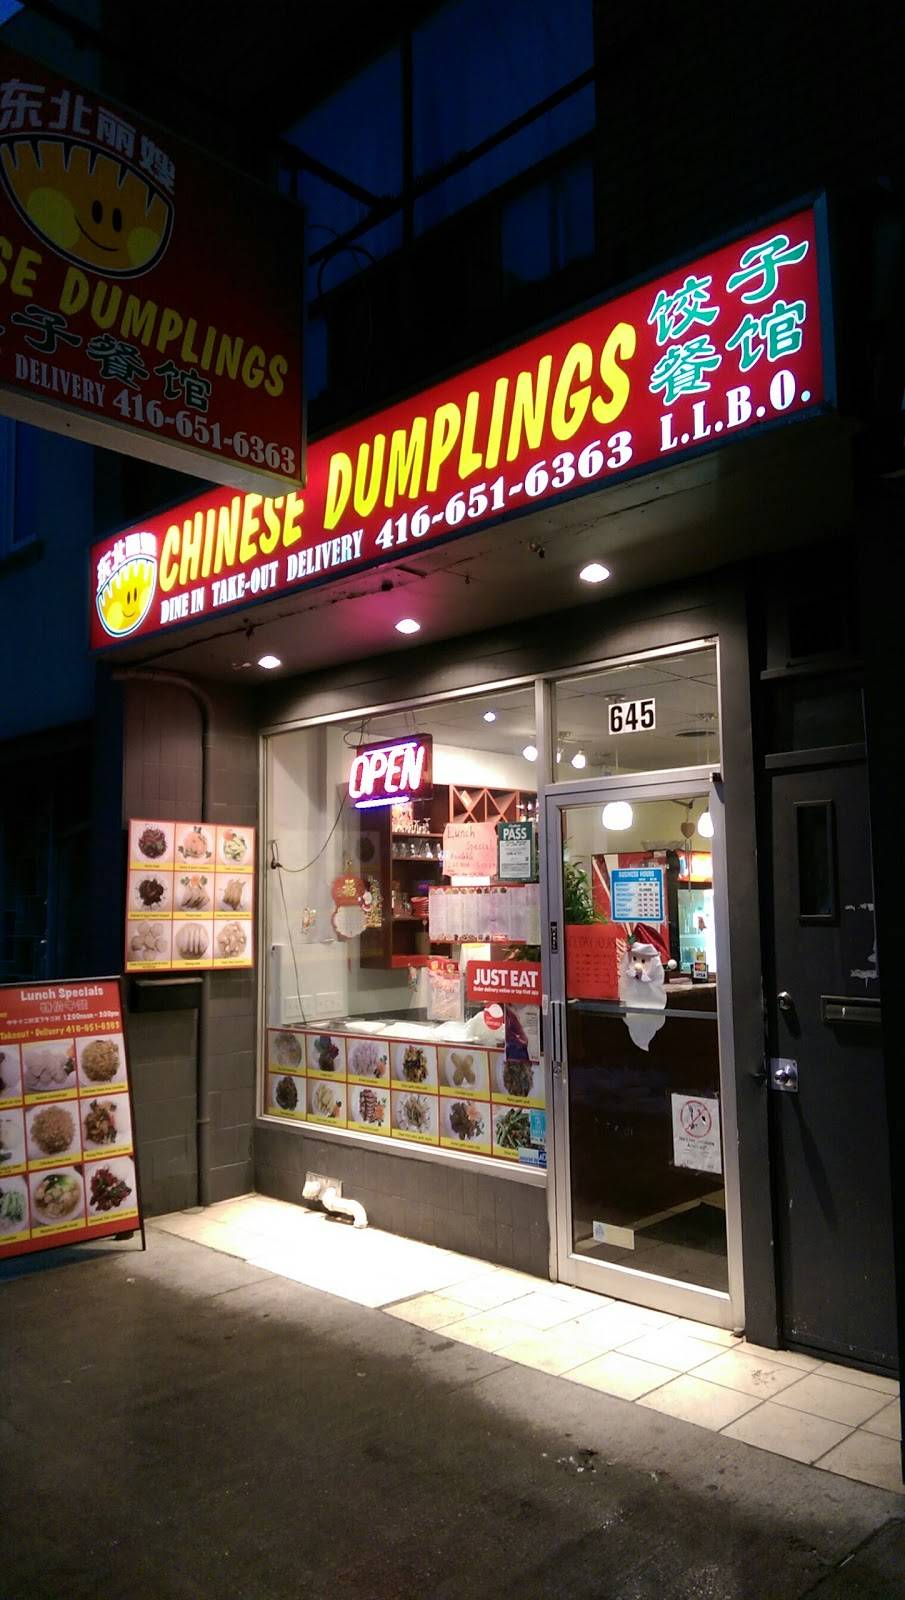 Chinese Dumplings | restaurant | 645 St Clair Ave W, Toronto, ON M6C 1A7, Canada | 4166516363 OR +1 416-651-6363